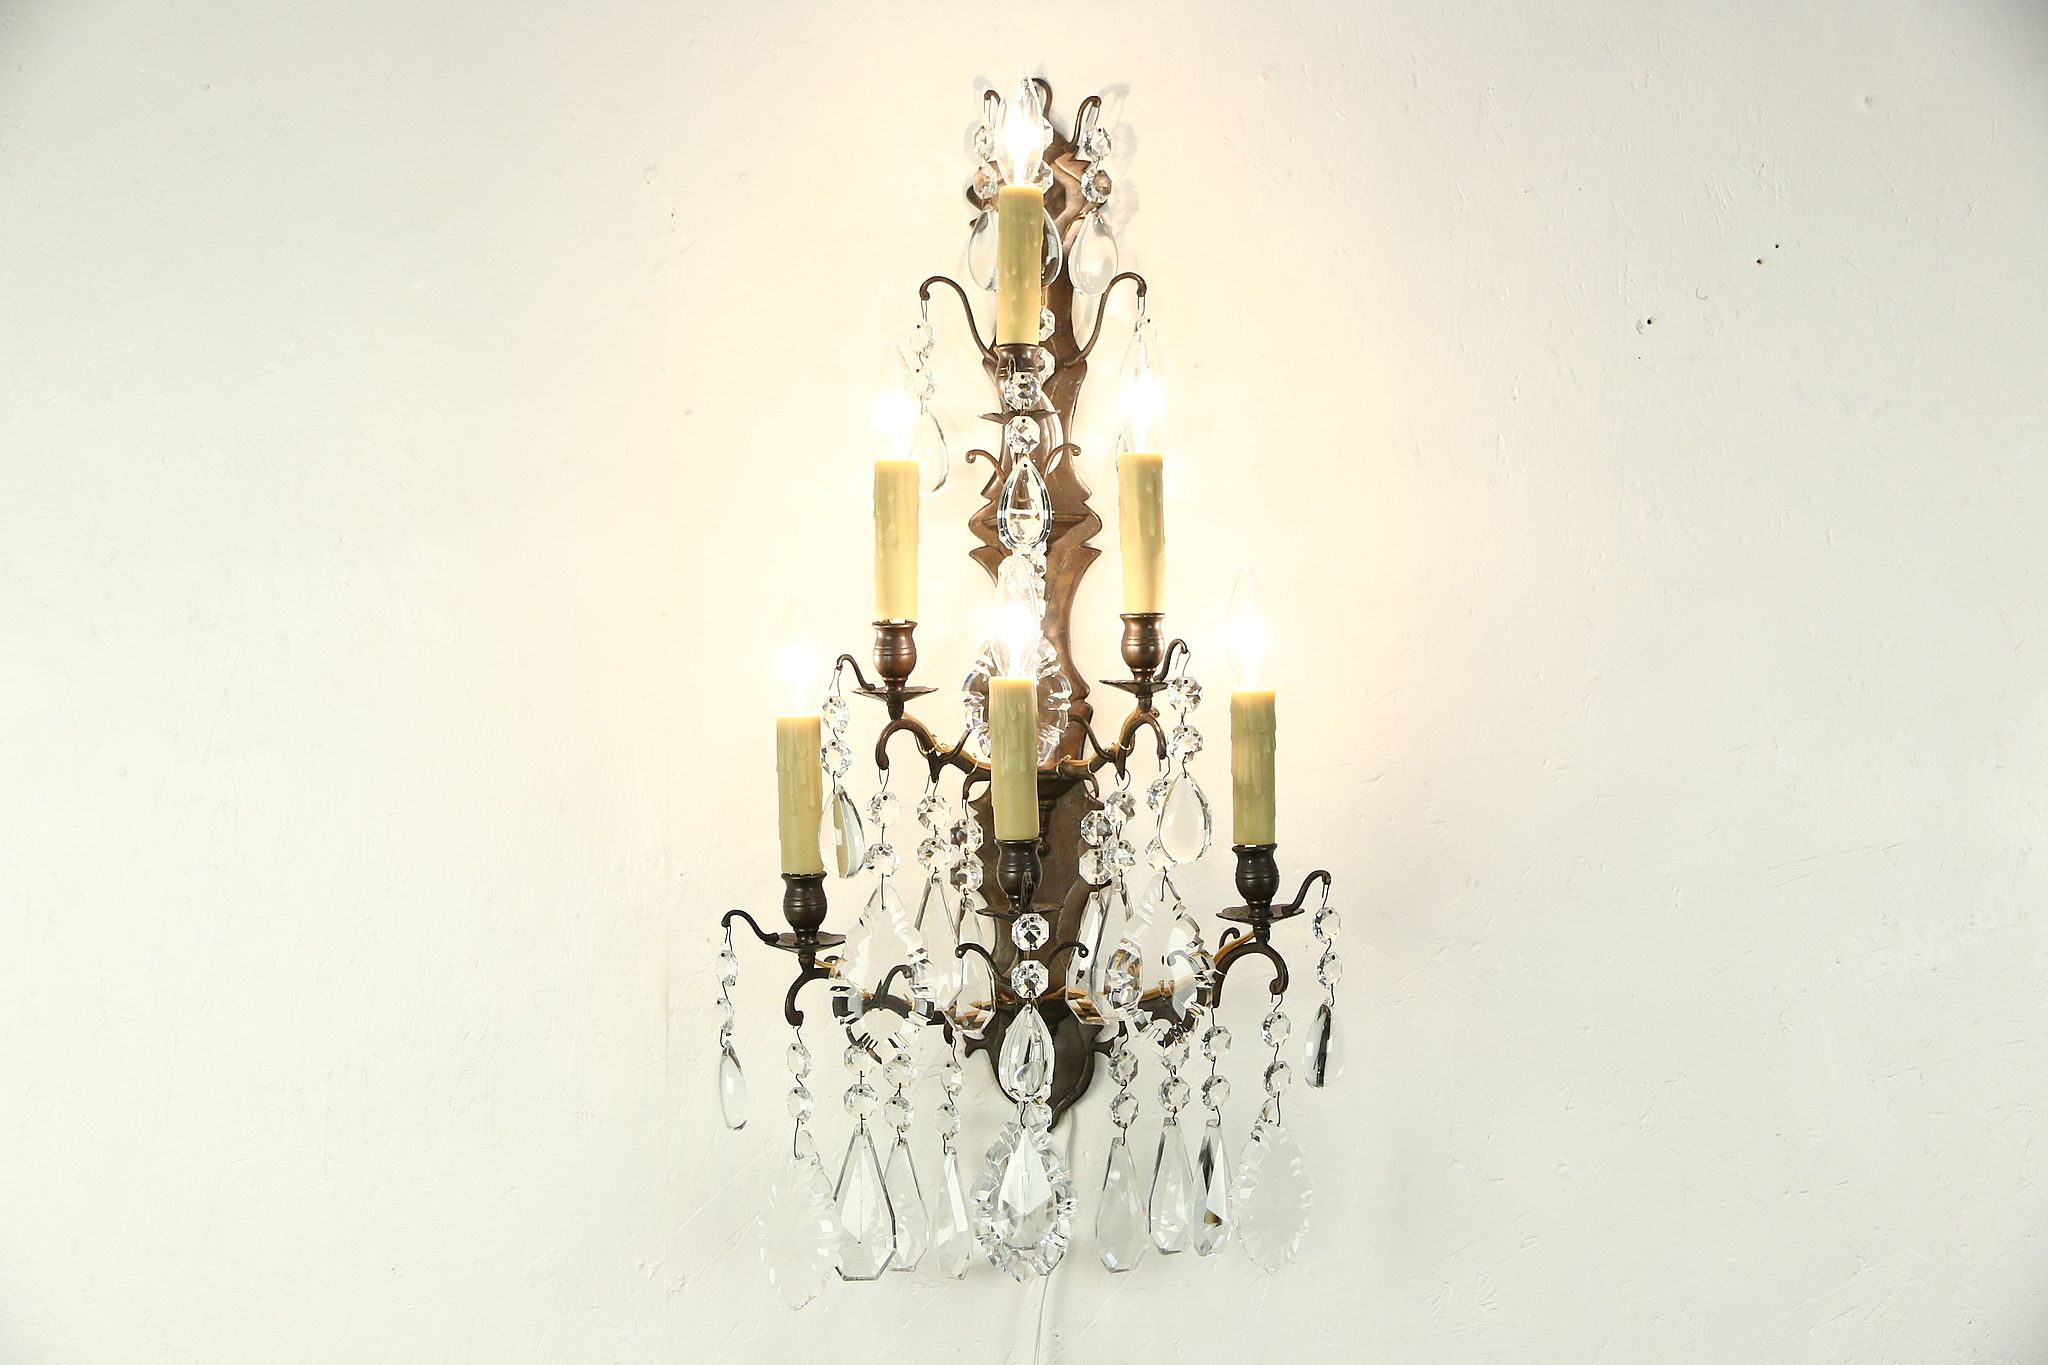 Crystal Brass 6 Candle 1890 S Antique Wall Sconce Electified Light Fixture